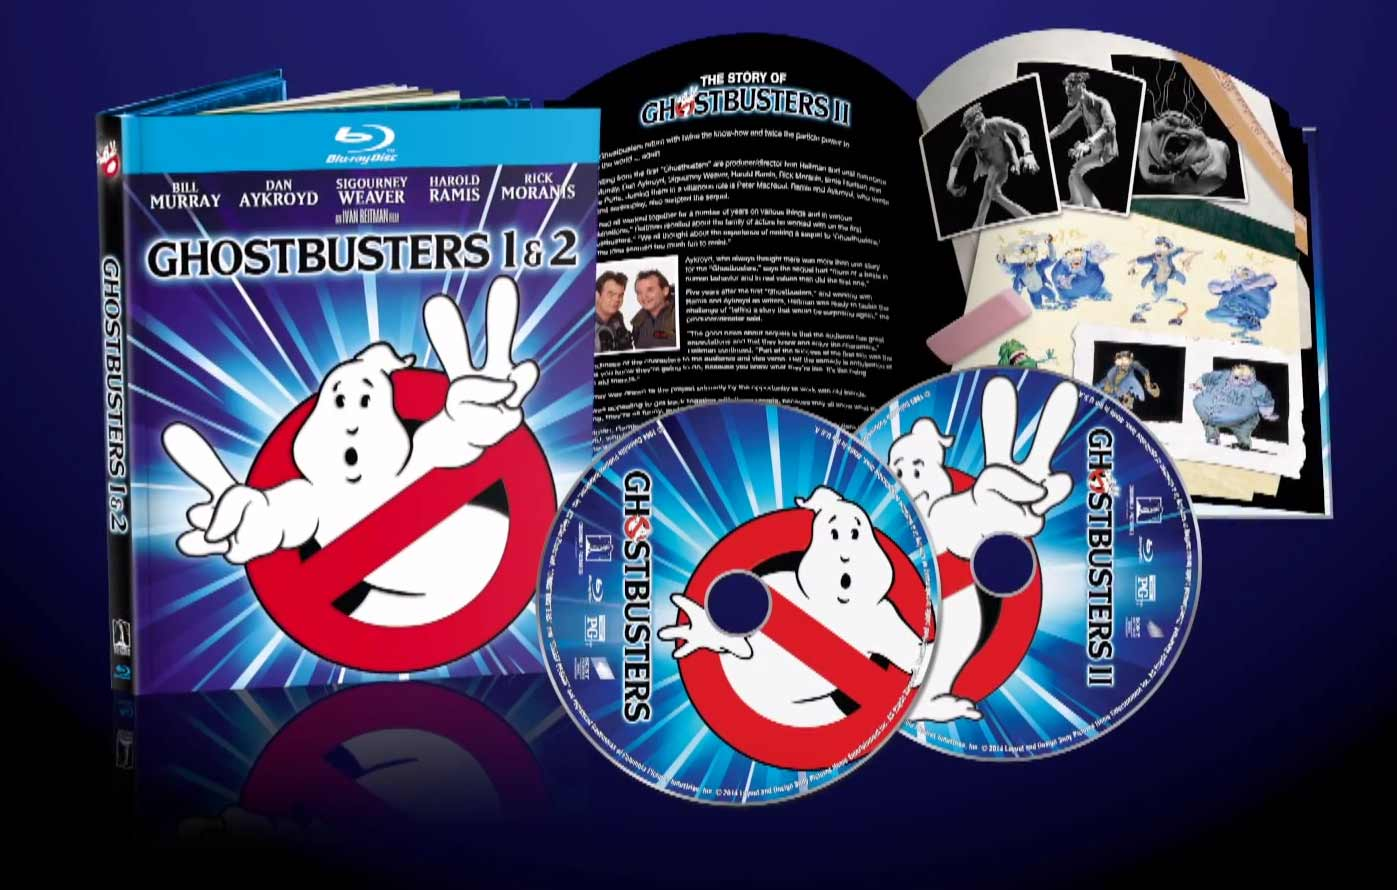 Sony releases trailer for Ghostbusters 1 & 2 Anniversary Blu-Ray set